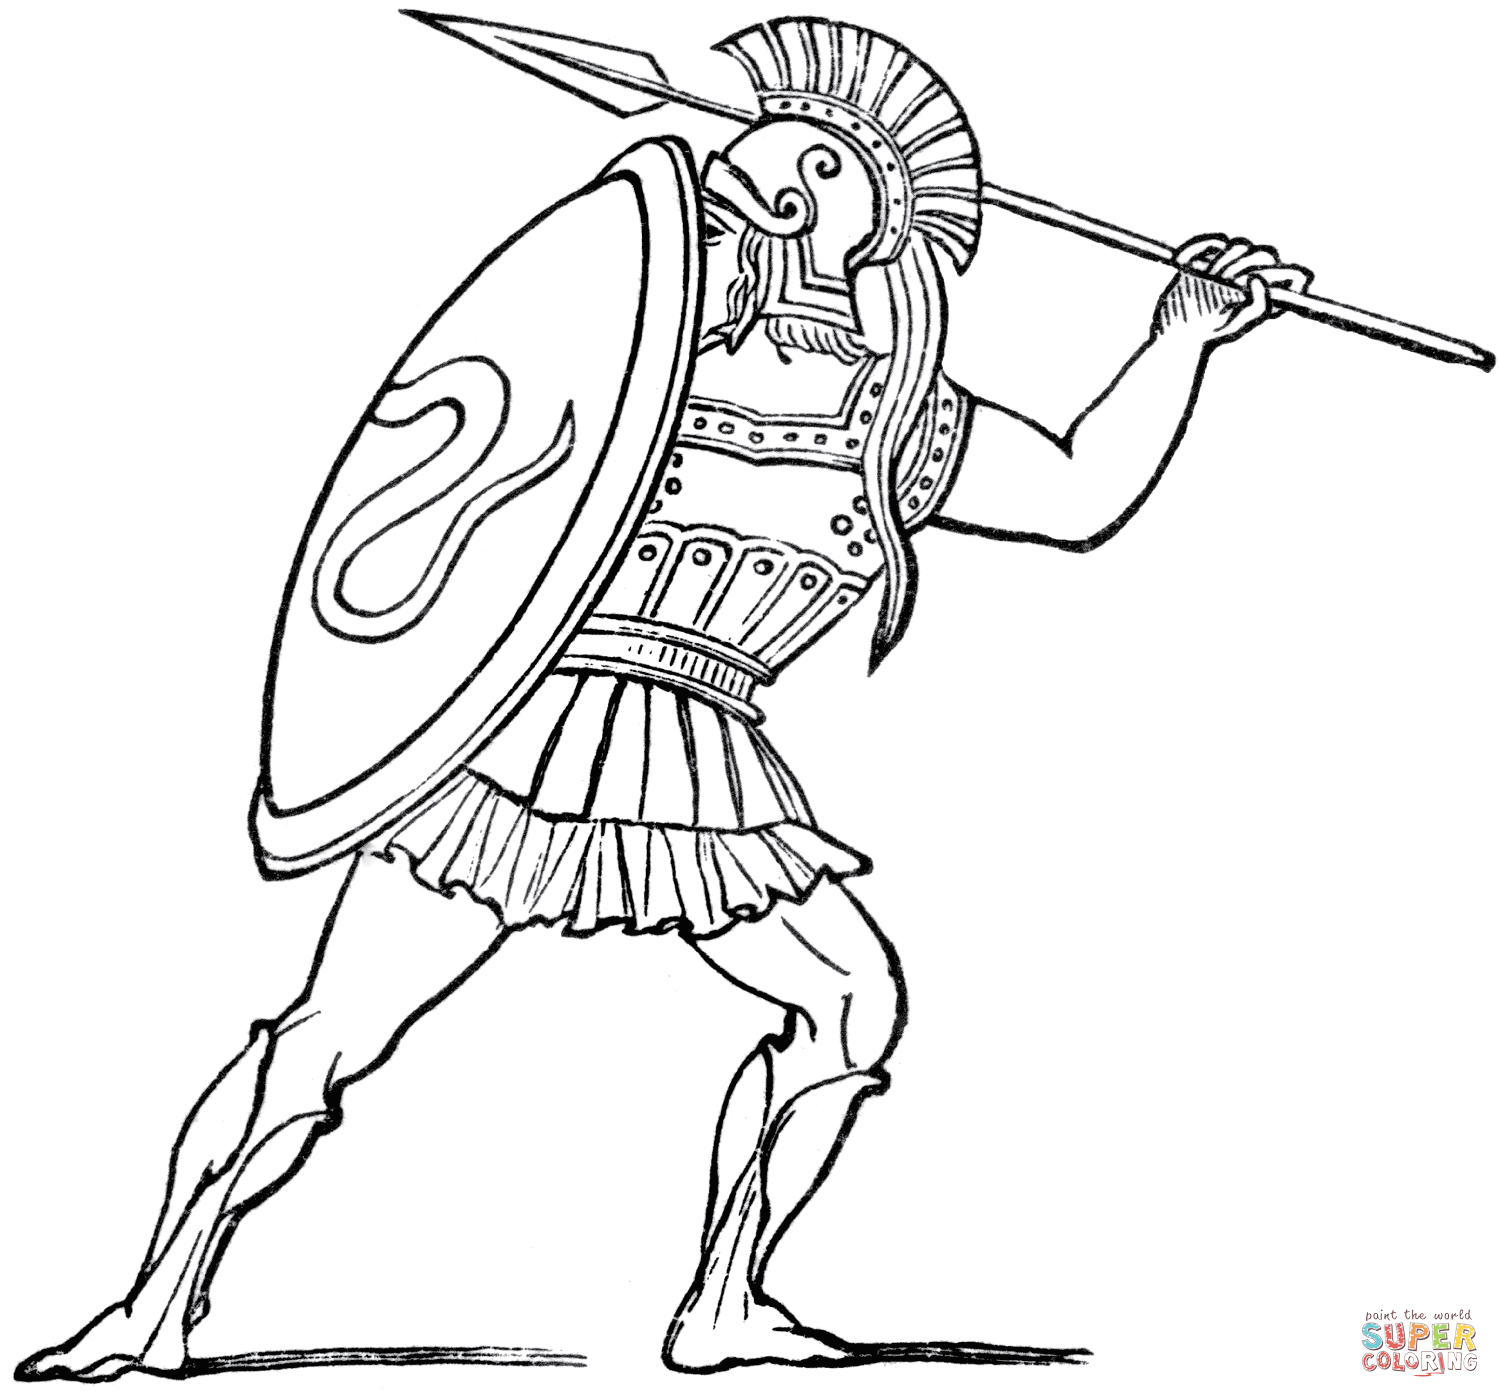 Coloring Pages Roman Soldier Coloring Page ancient roman war coloring pages az spartan warrior page free printable pages